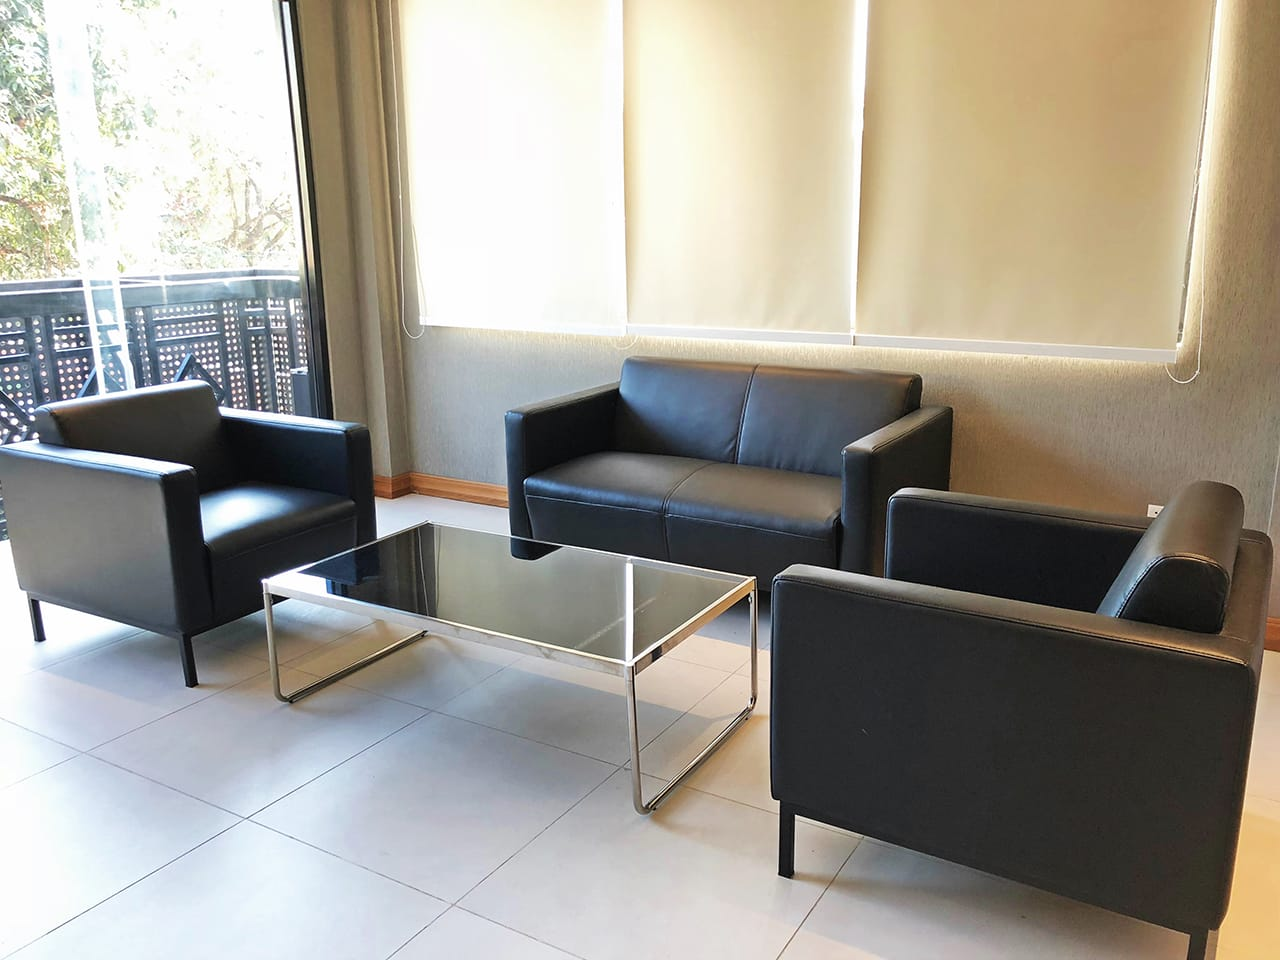 Cotta coffee table rect comfort design the chair for Outdoor furniture yangon